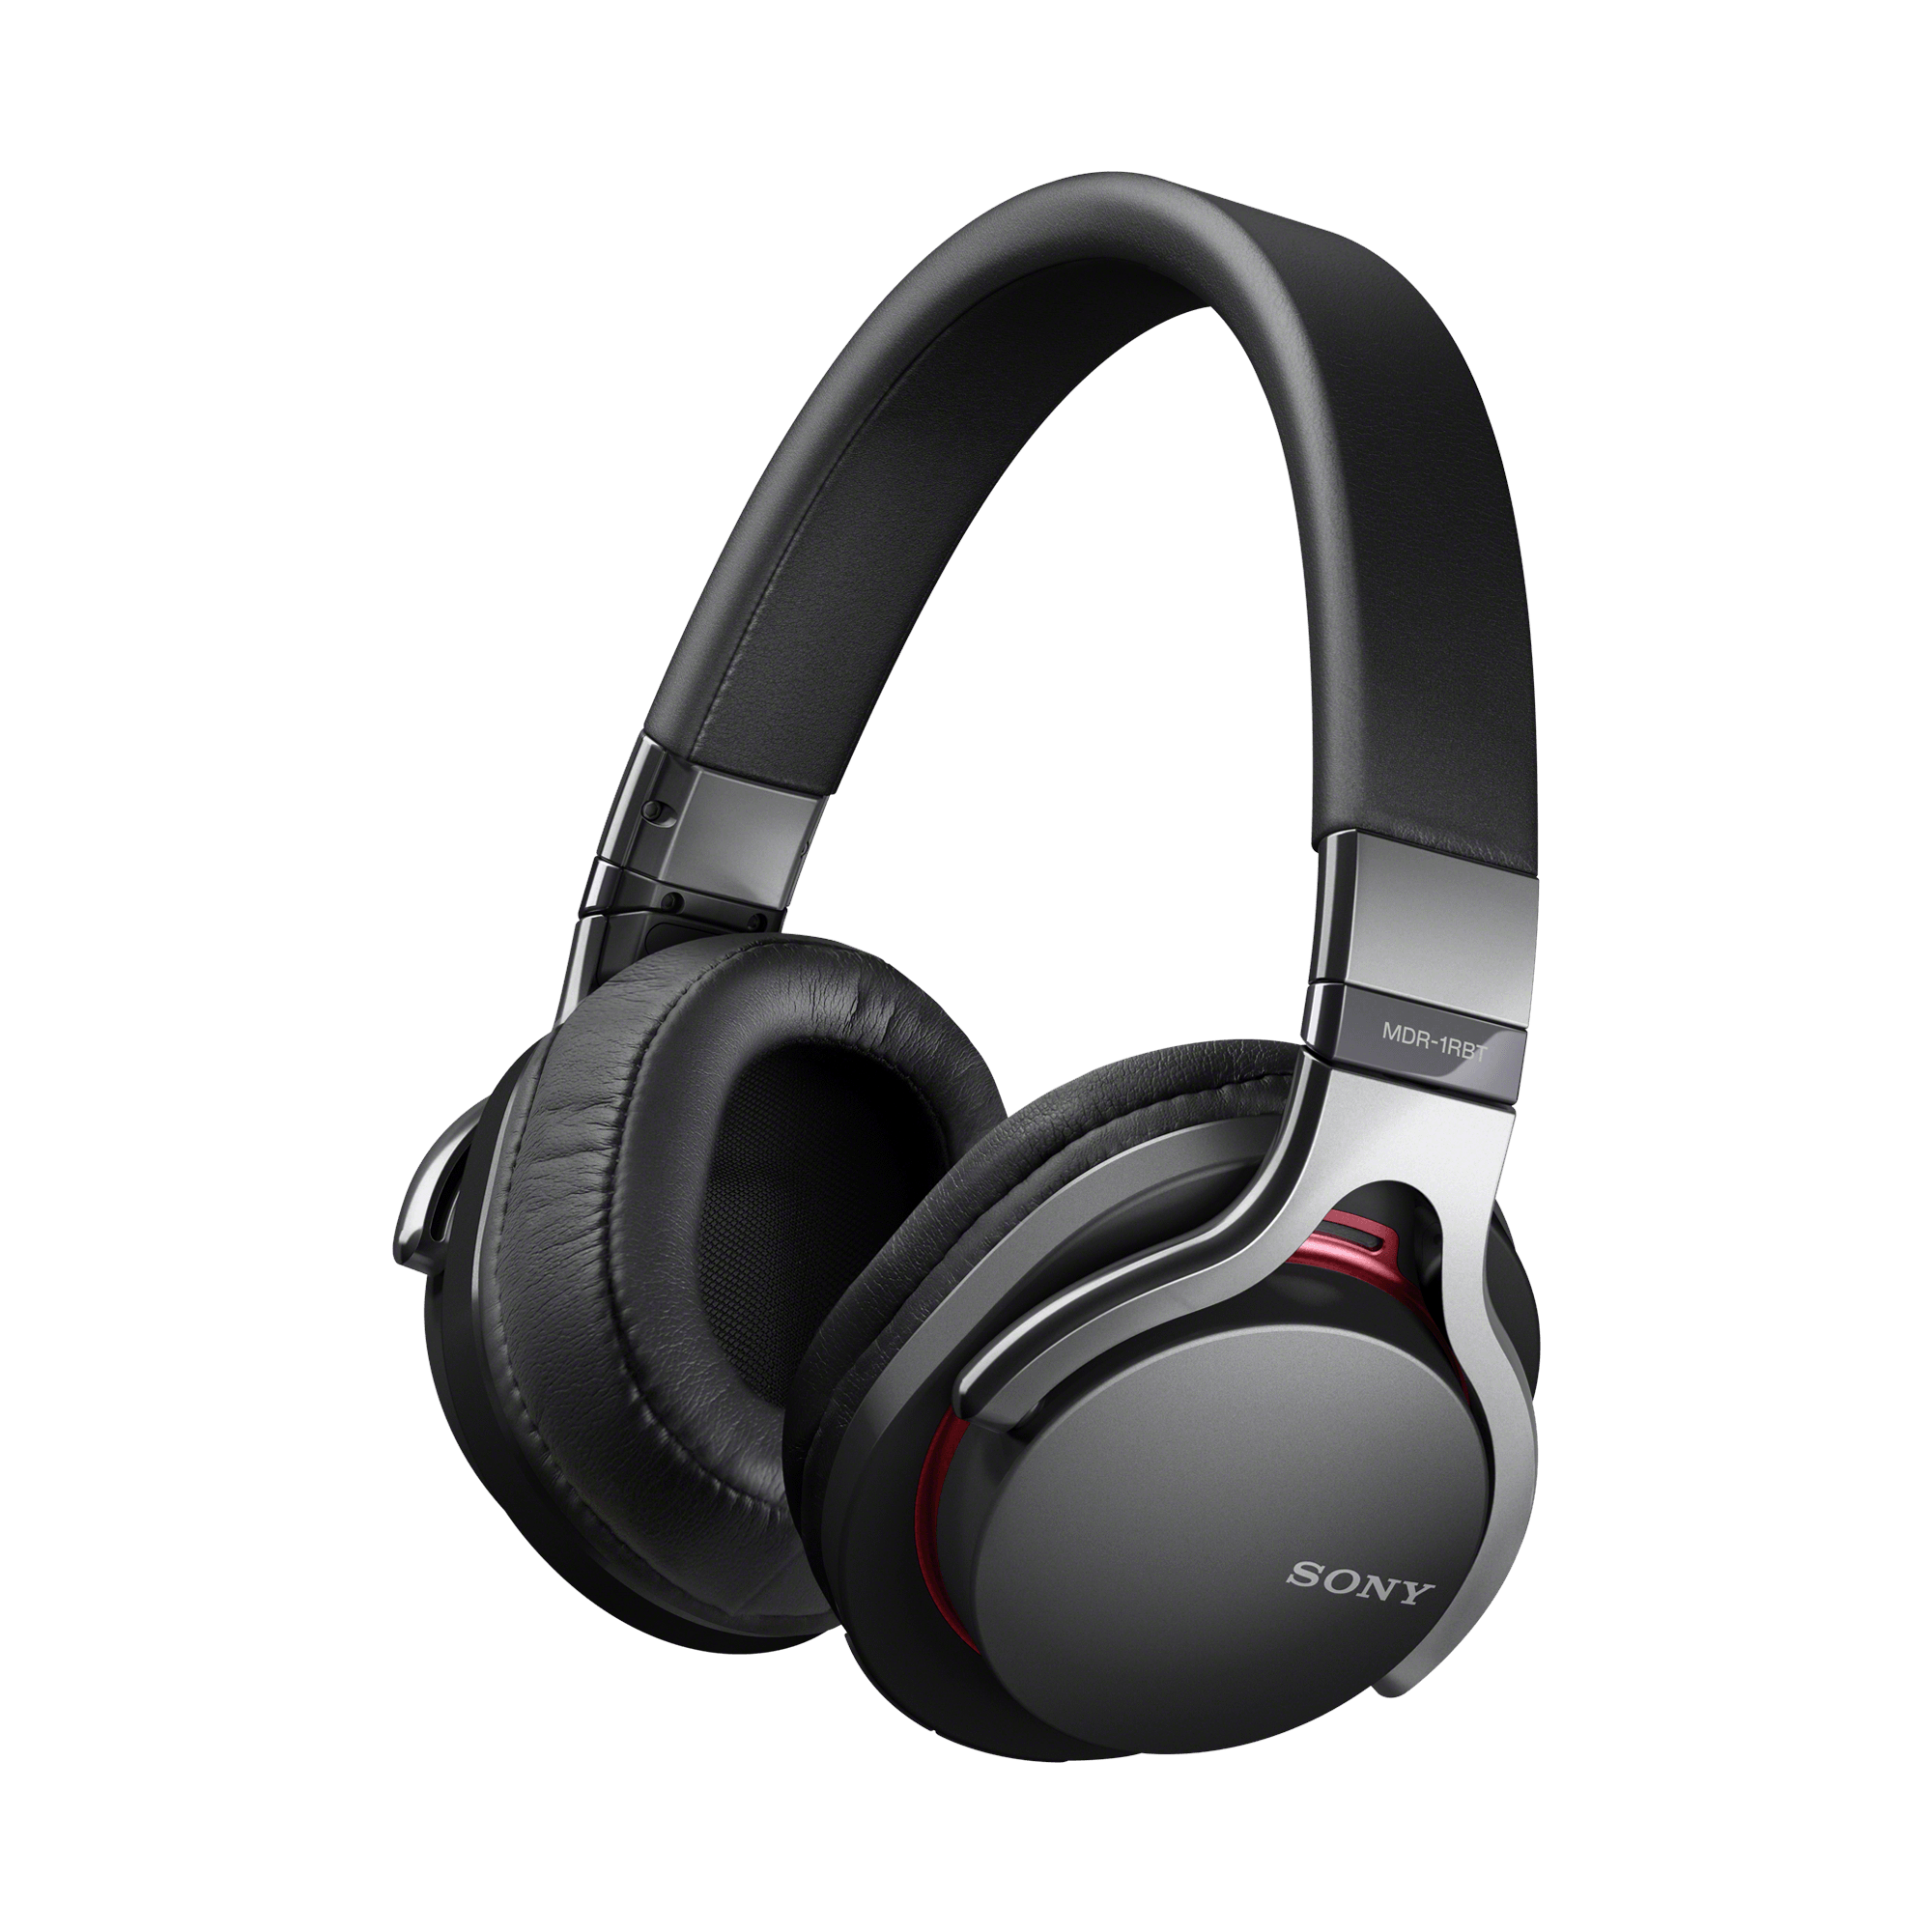 Png in high resolution. Headphones clipart file